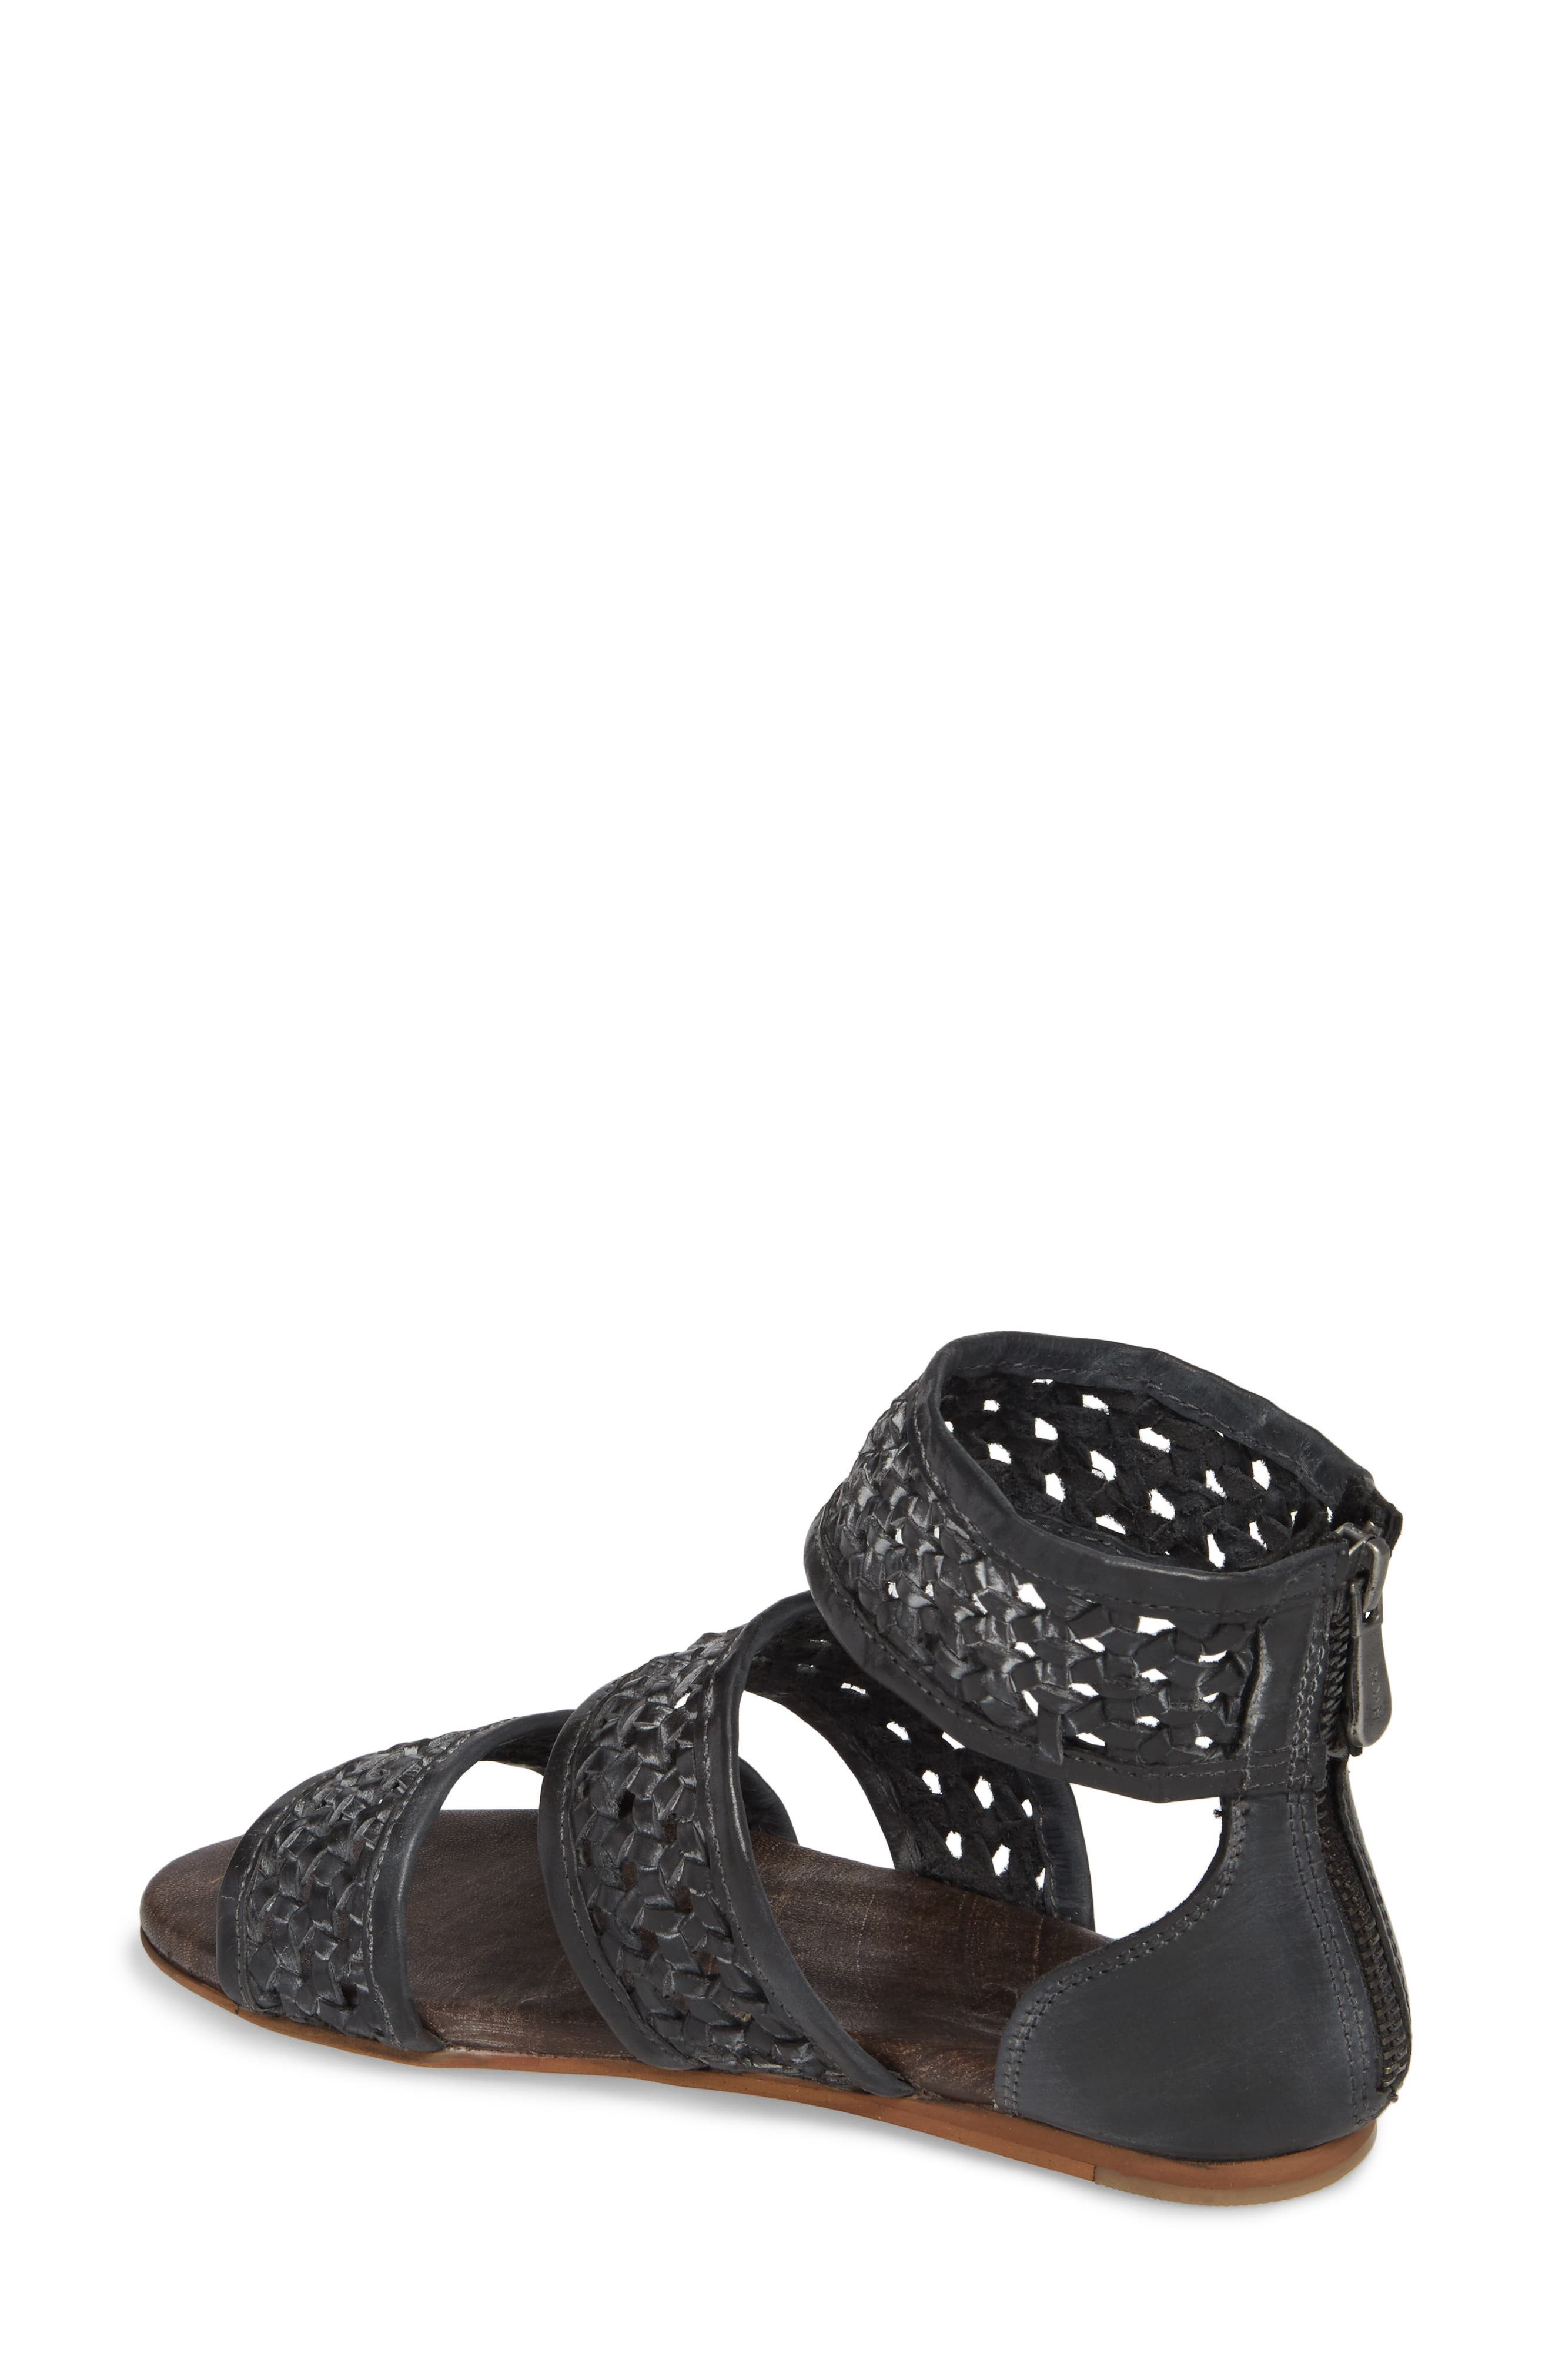 Clio Woven Ankle Cuff Sandal,                             Alternate thumbnail 2, color,                             BLACK